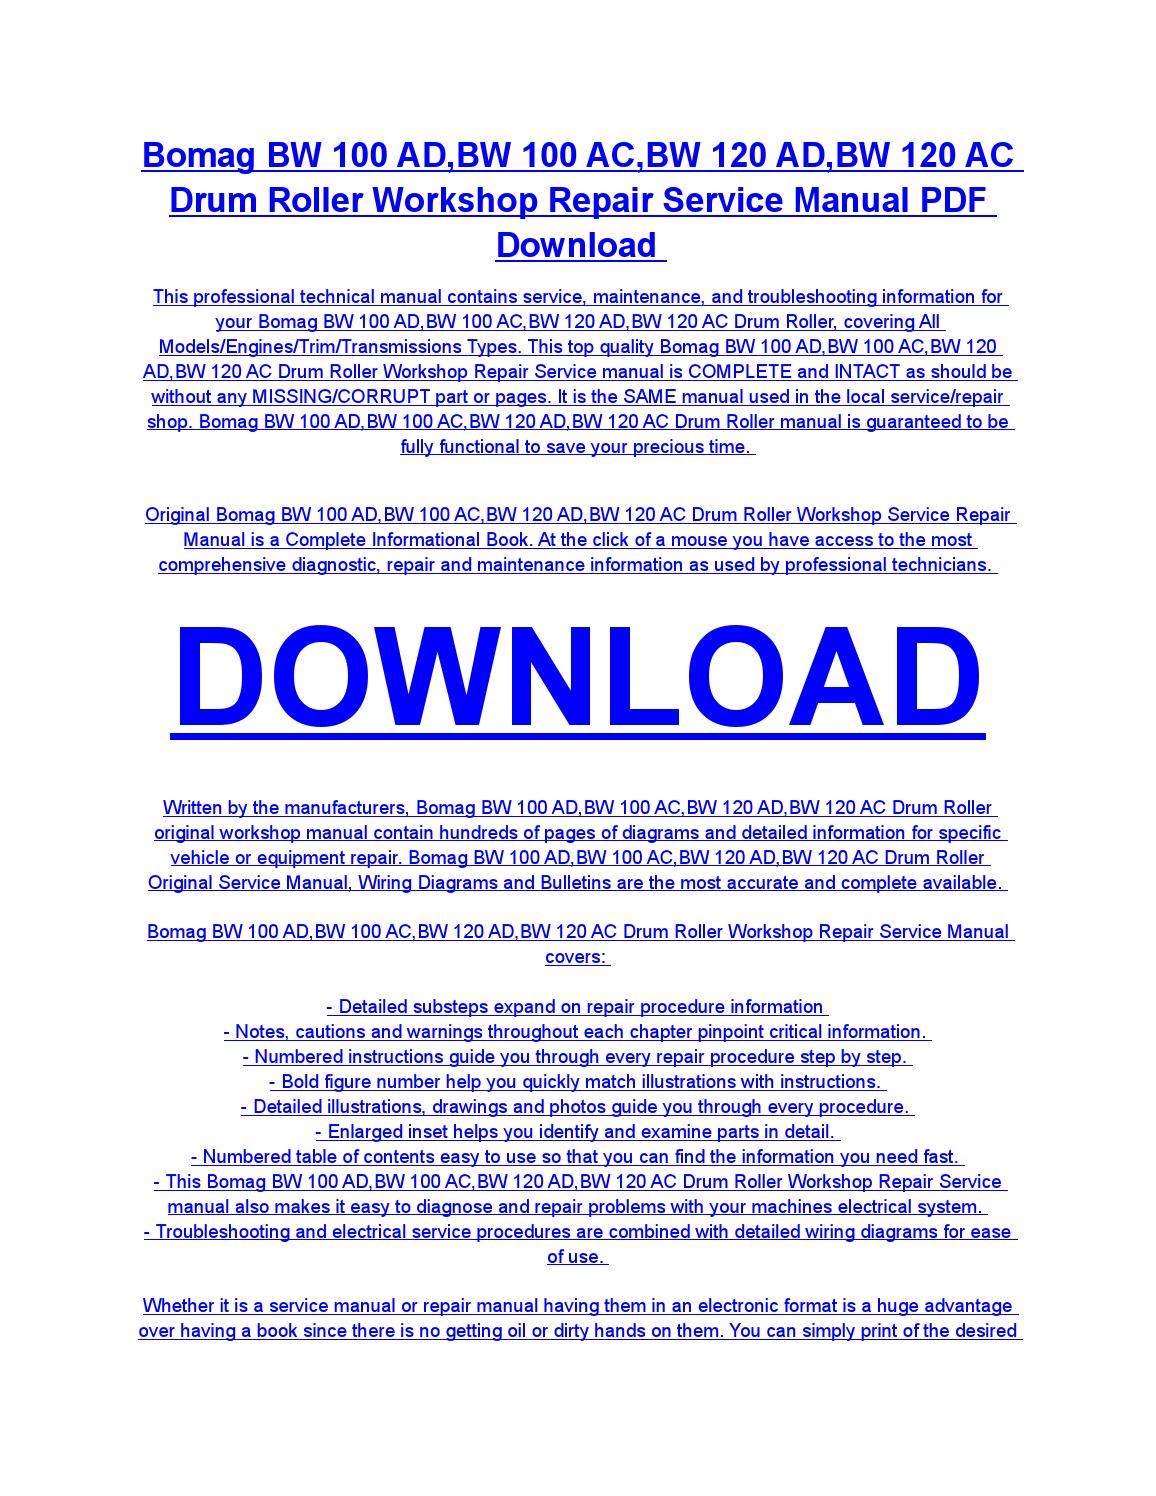 hight resolution of bomag bw 100 ad bw 100 ac bw 120 ad bw 120 ac drum roller service repair workshop manual download